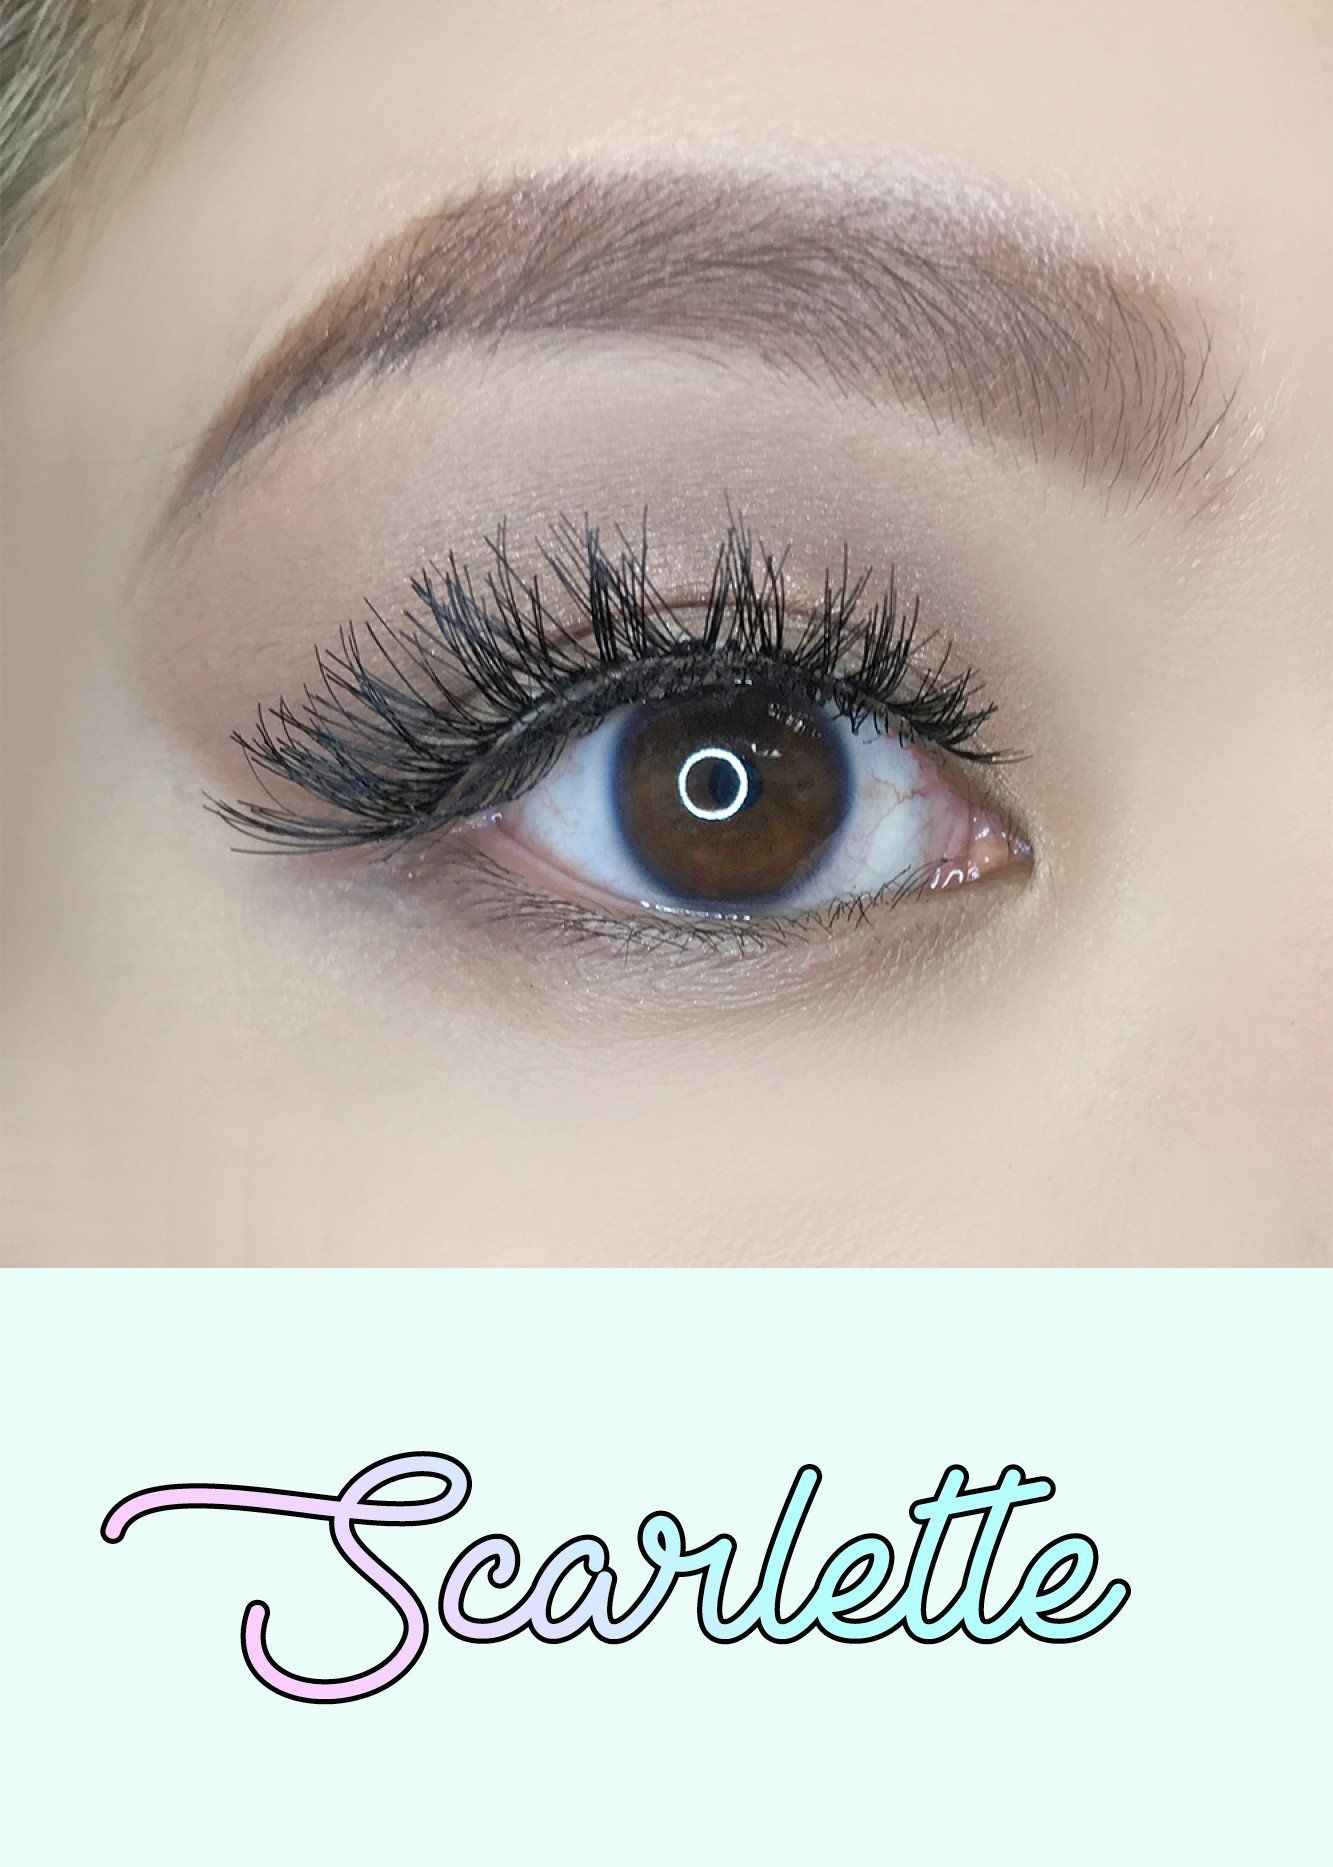 3640ee3b6eb AOA Studio Eyelashes - Scarlette in 2019 | issa look | Eyelashes ...